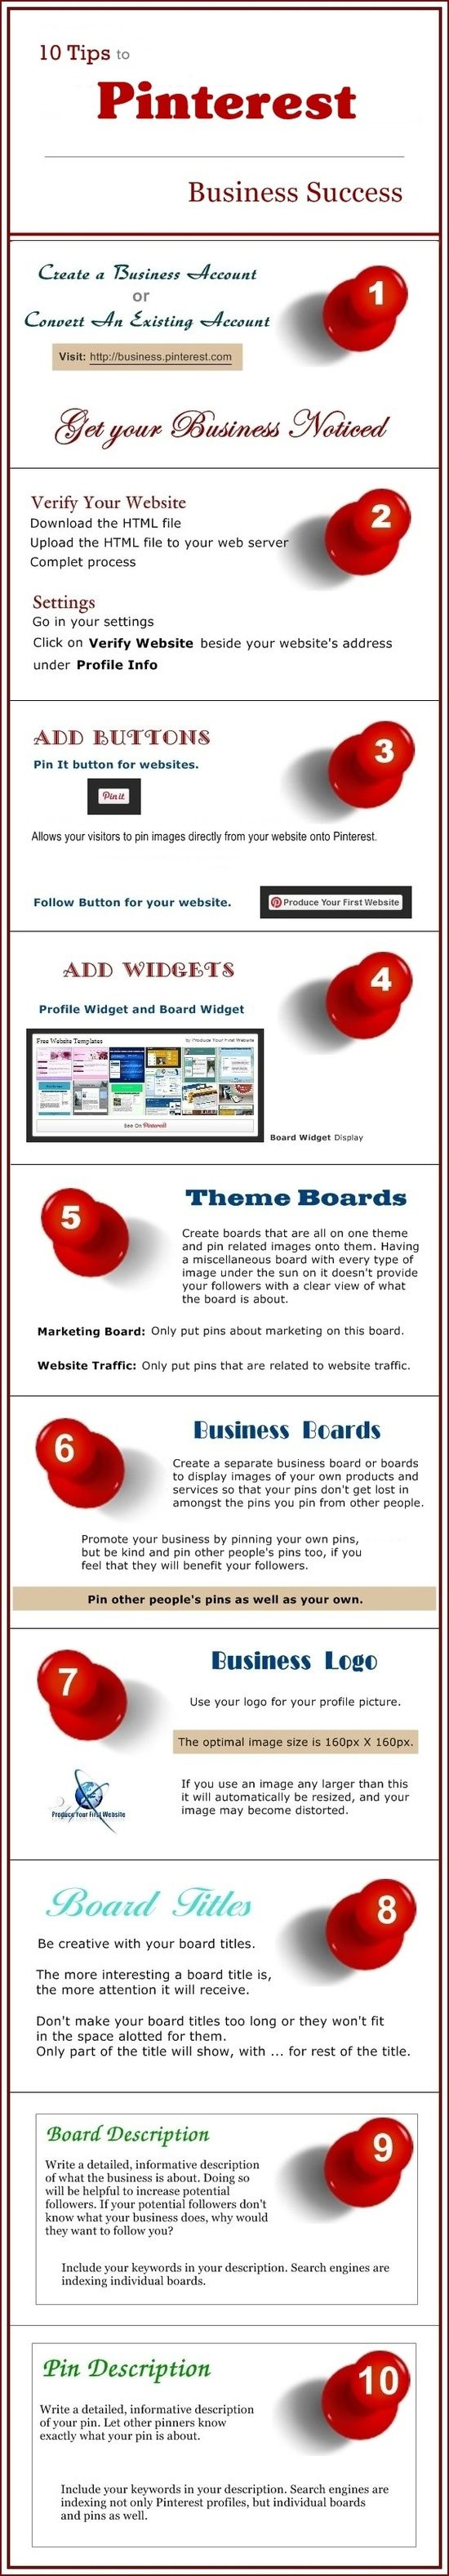 10 Tips to #Pinterest Business Success